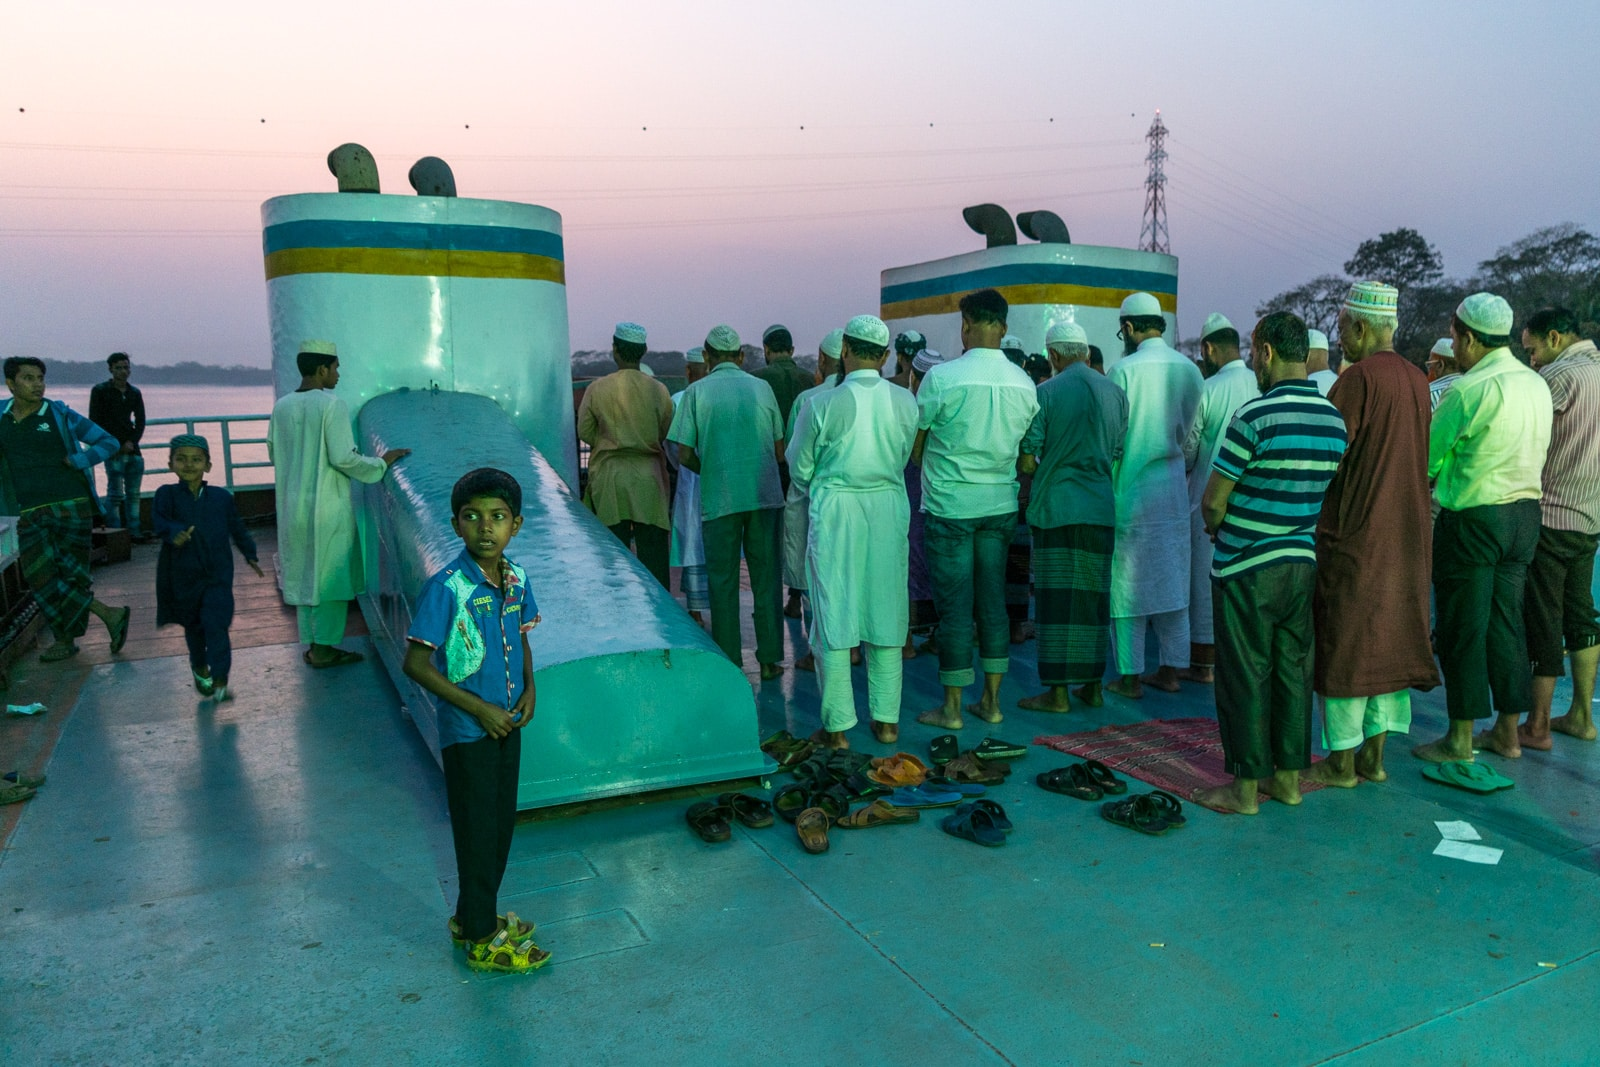 Launches from Hularhat to Dhaka, Bangladesh - Men praying on the boat - Lost With Purpose travel blog